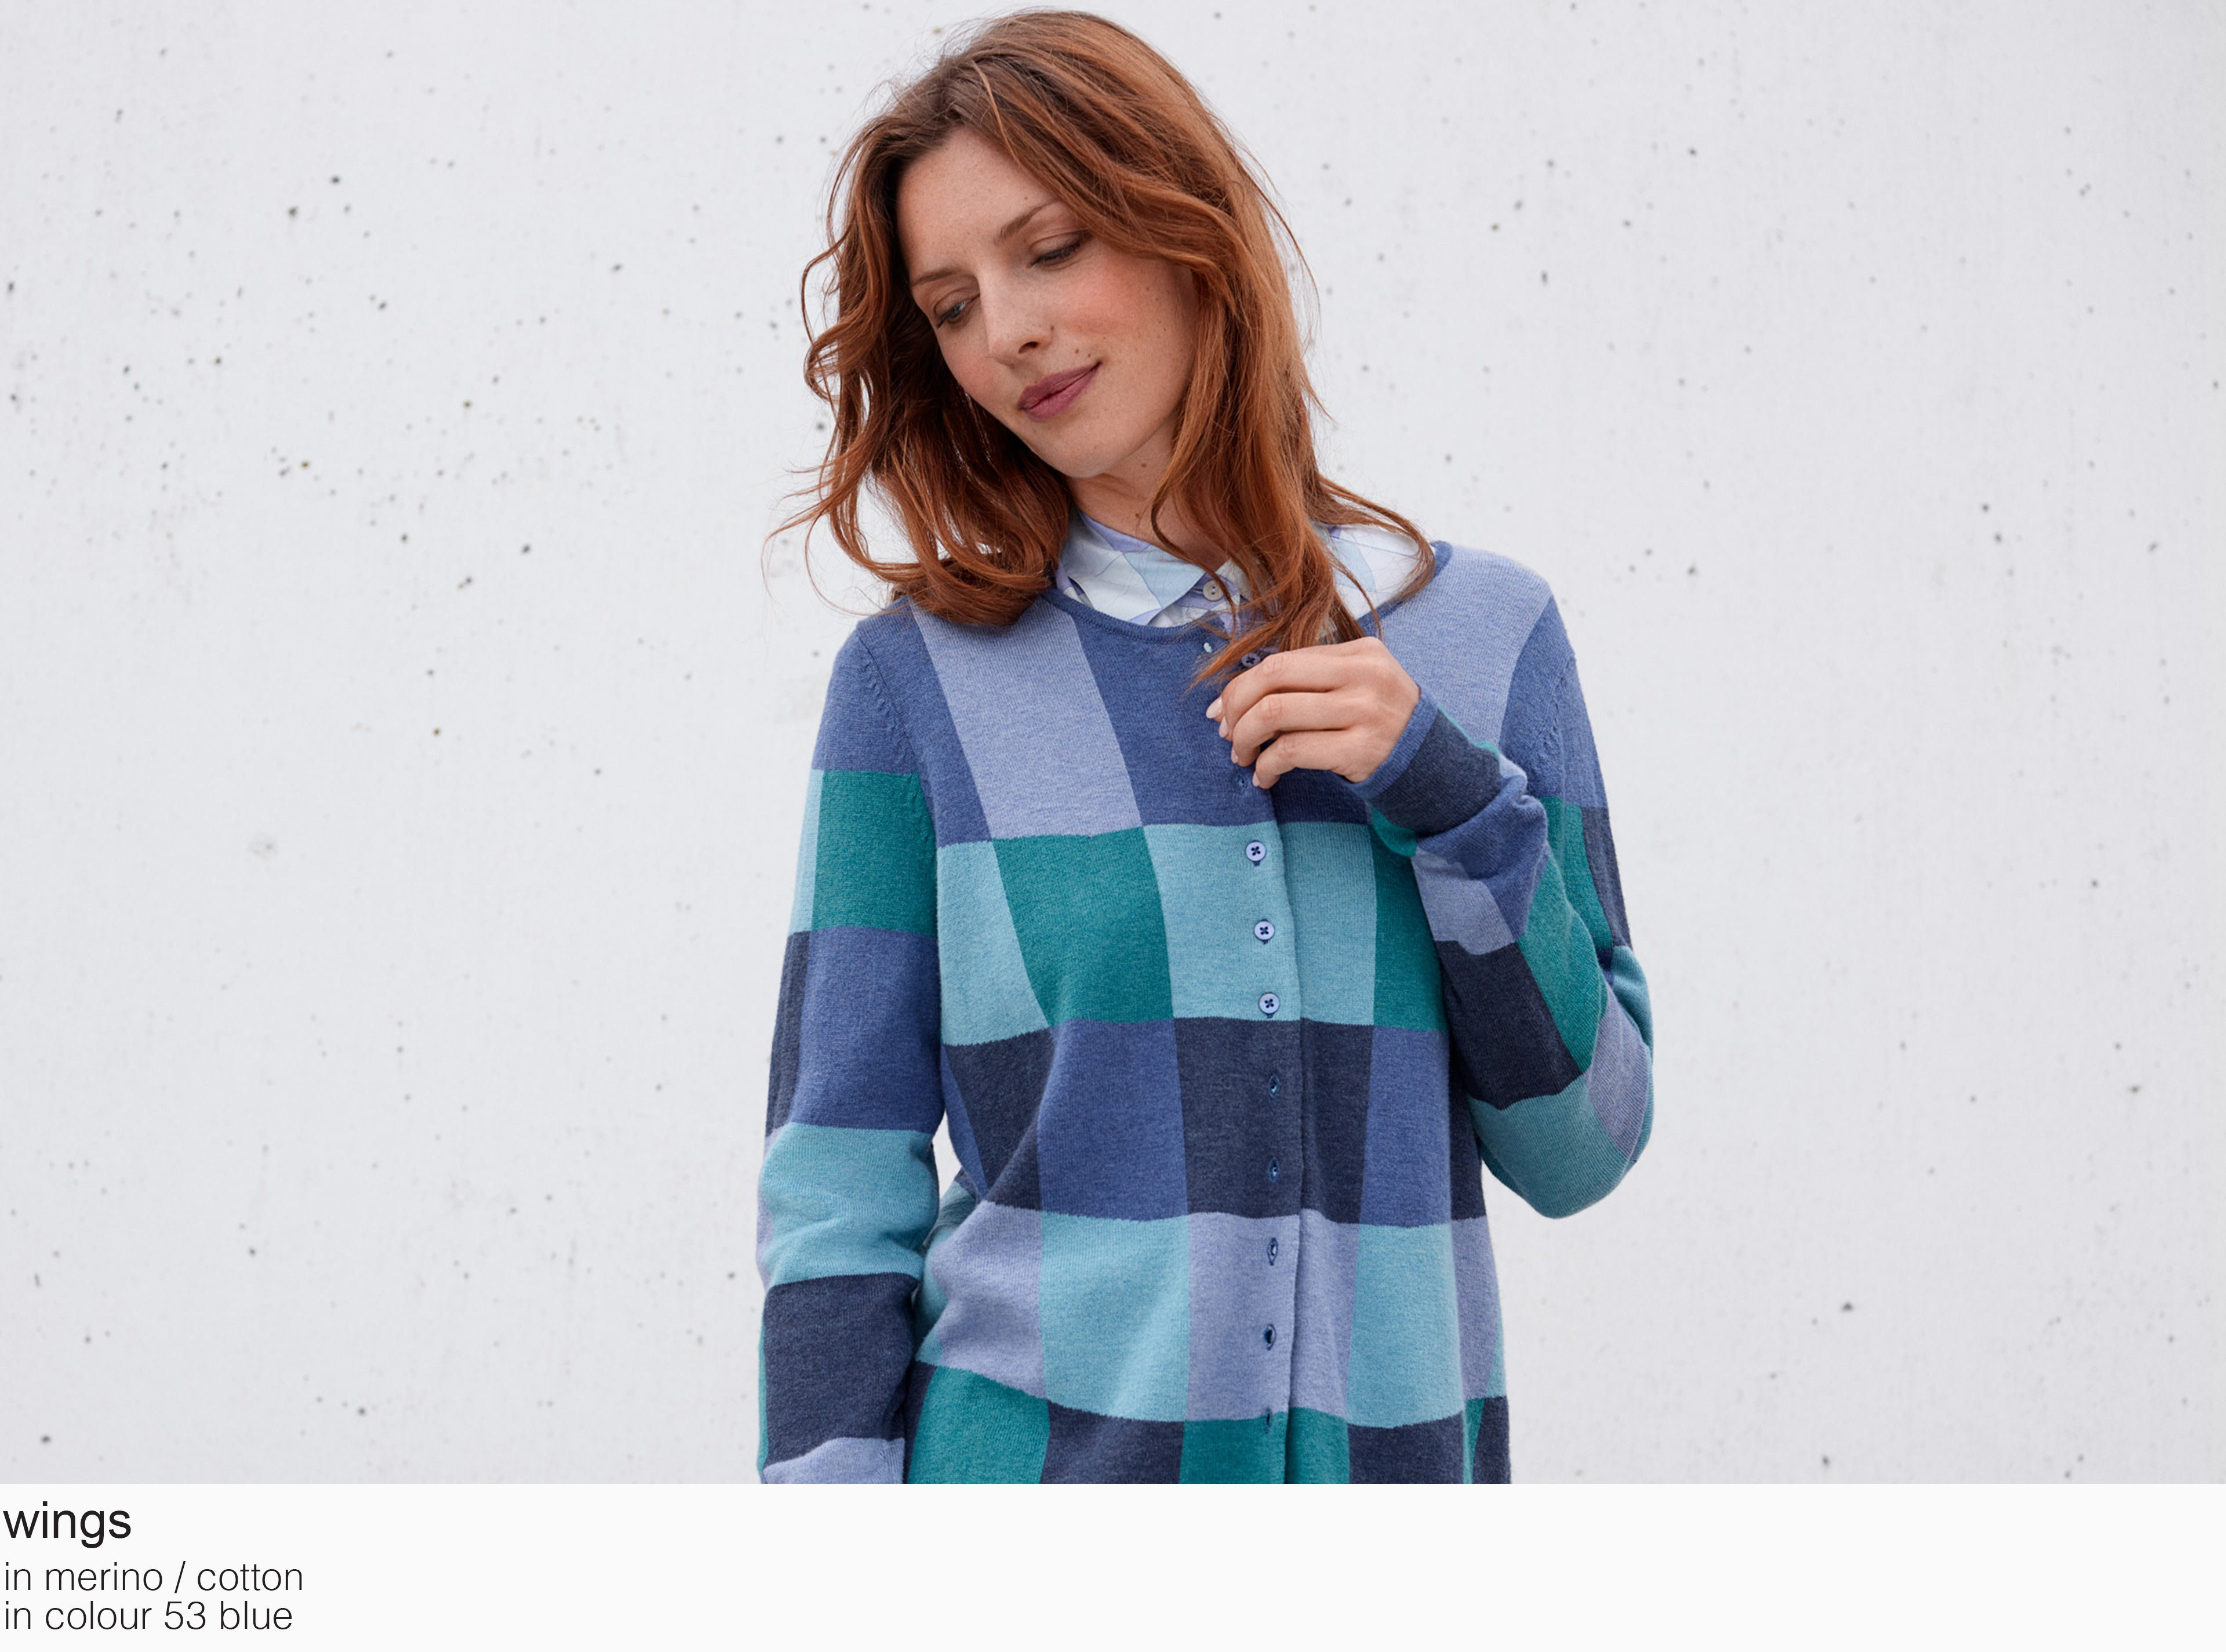 mansted wings merino cotton 53 blue aw19 aw 2019 Knitwear quality knit multicoloured colour colourful cotton yak lambswool soft versatile feminine beautiful details fashion favourite autumn winter bright colours pullover jumper t-shirt cardigan jacket strik kvalitetsstrik farverig bluser trøjer feminin strik til kvinder